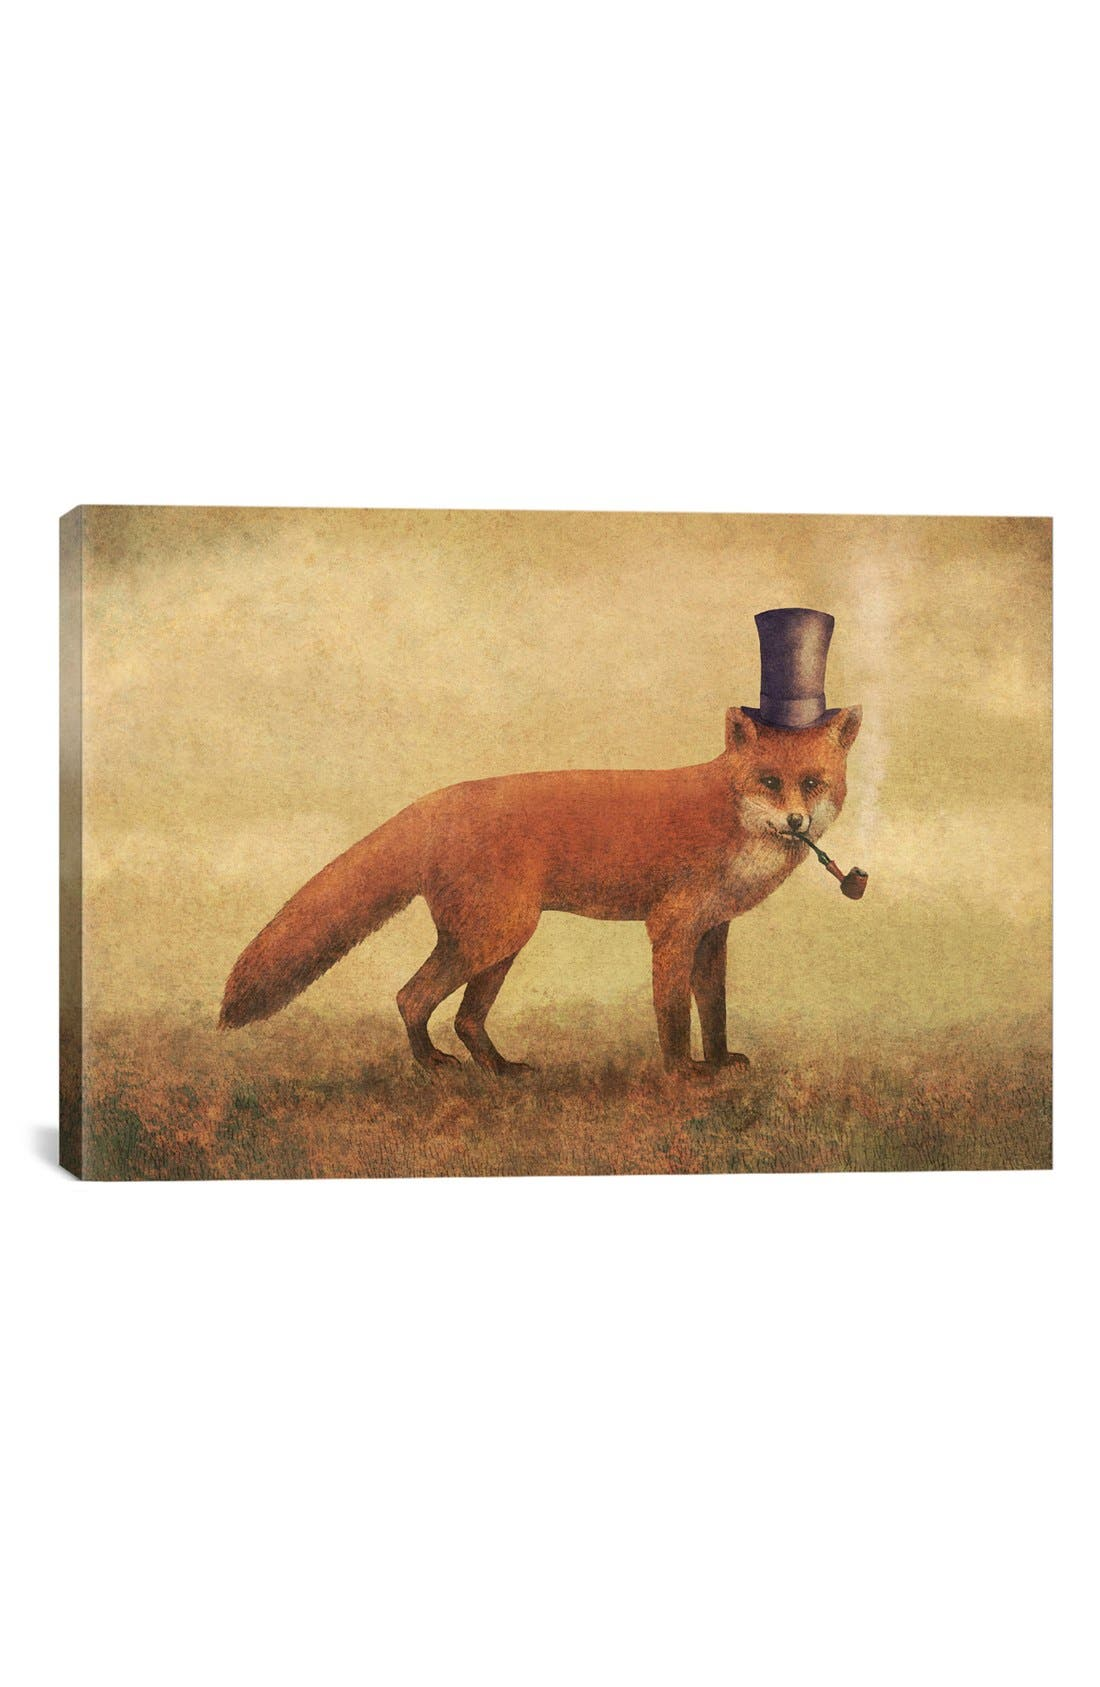 Alternate Image 1 Selected - iCanvas 'Crazy Like a Fox' Giclée Print Canvas Art